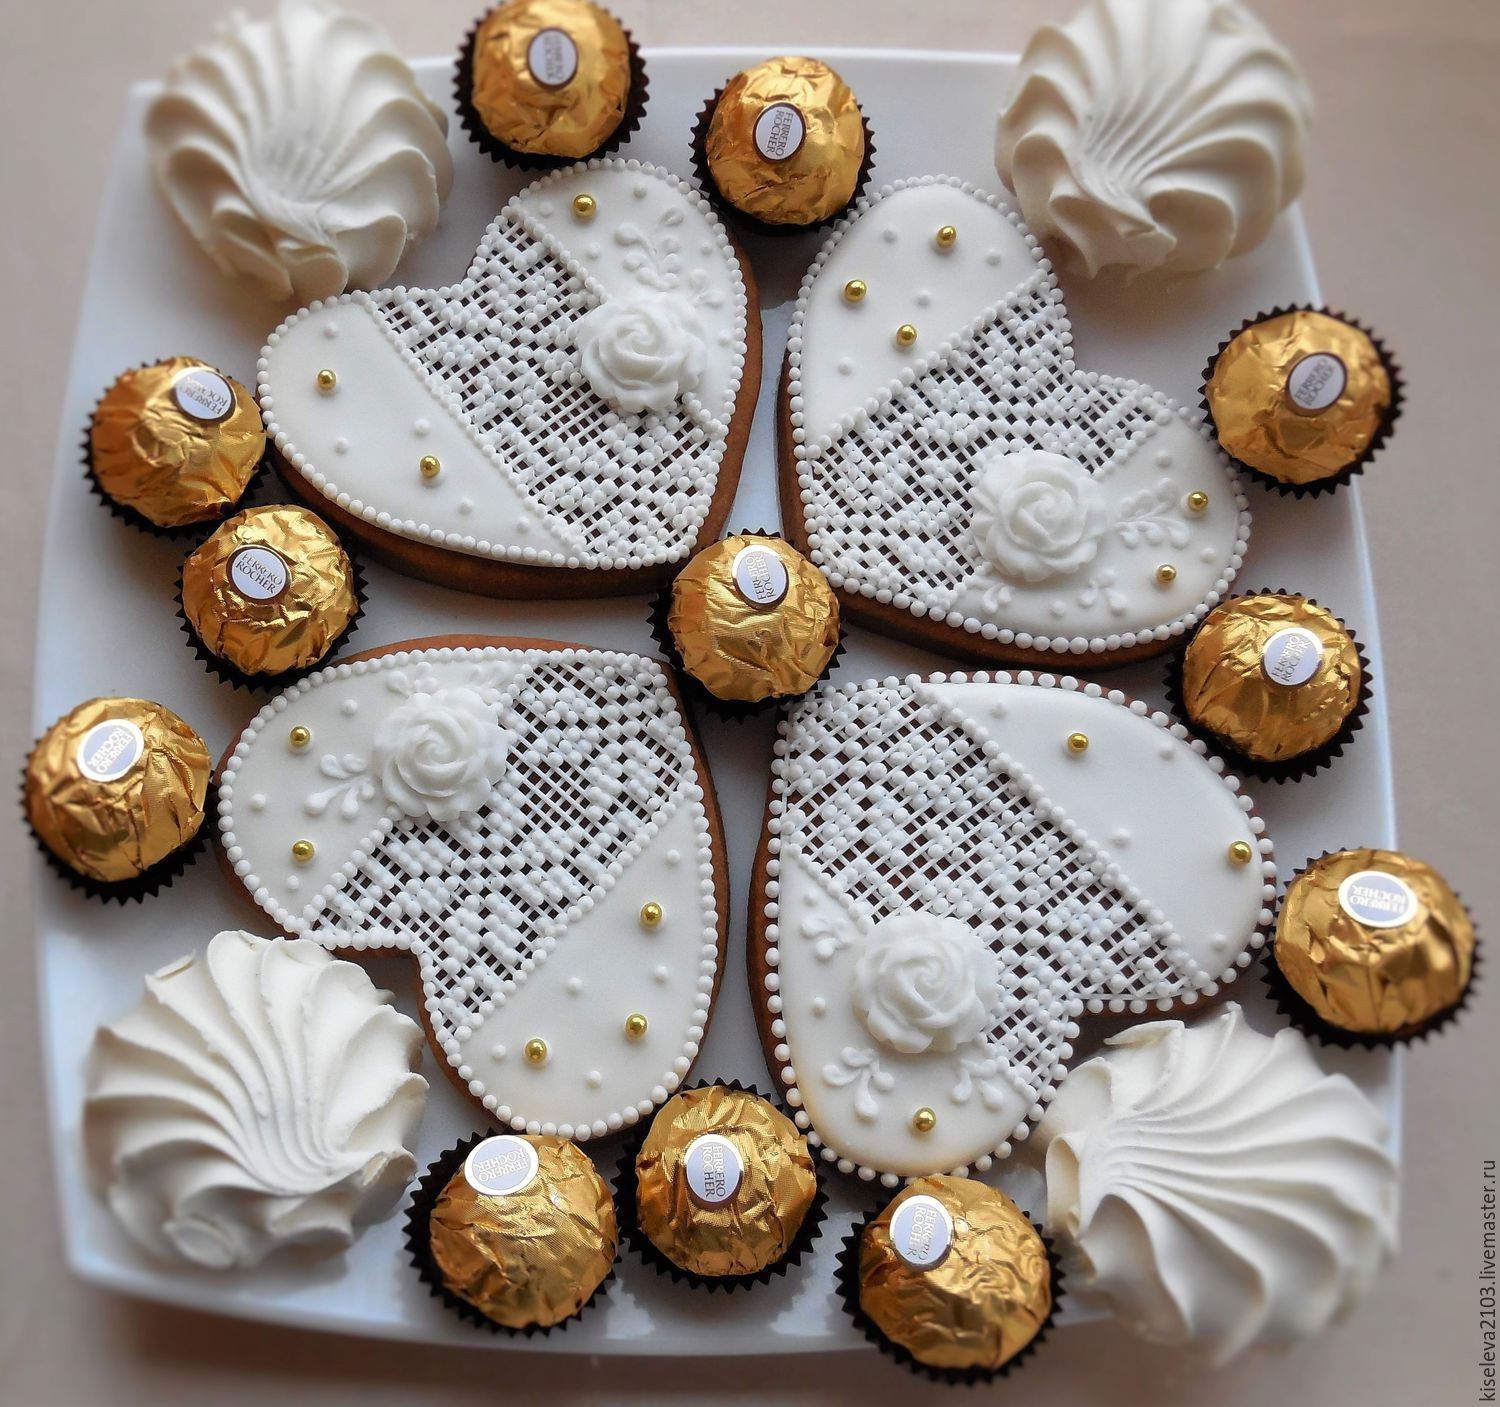 Gingerbread Gingerbread Hearts Culinary Souvenir Handmade Shop Online On Livemaster With Shipping 60iuhcom Dubna